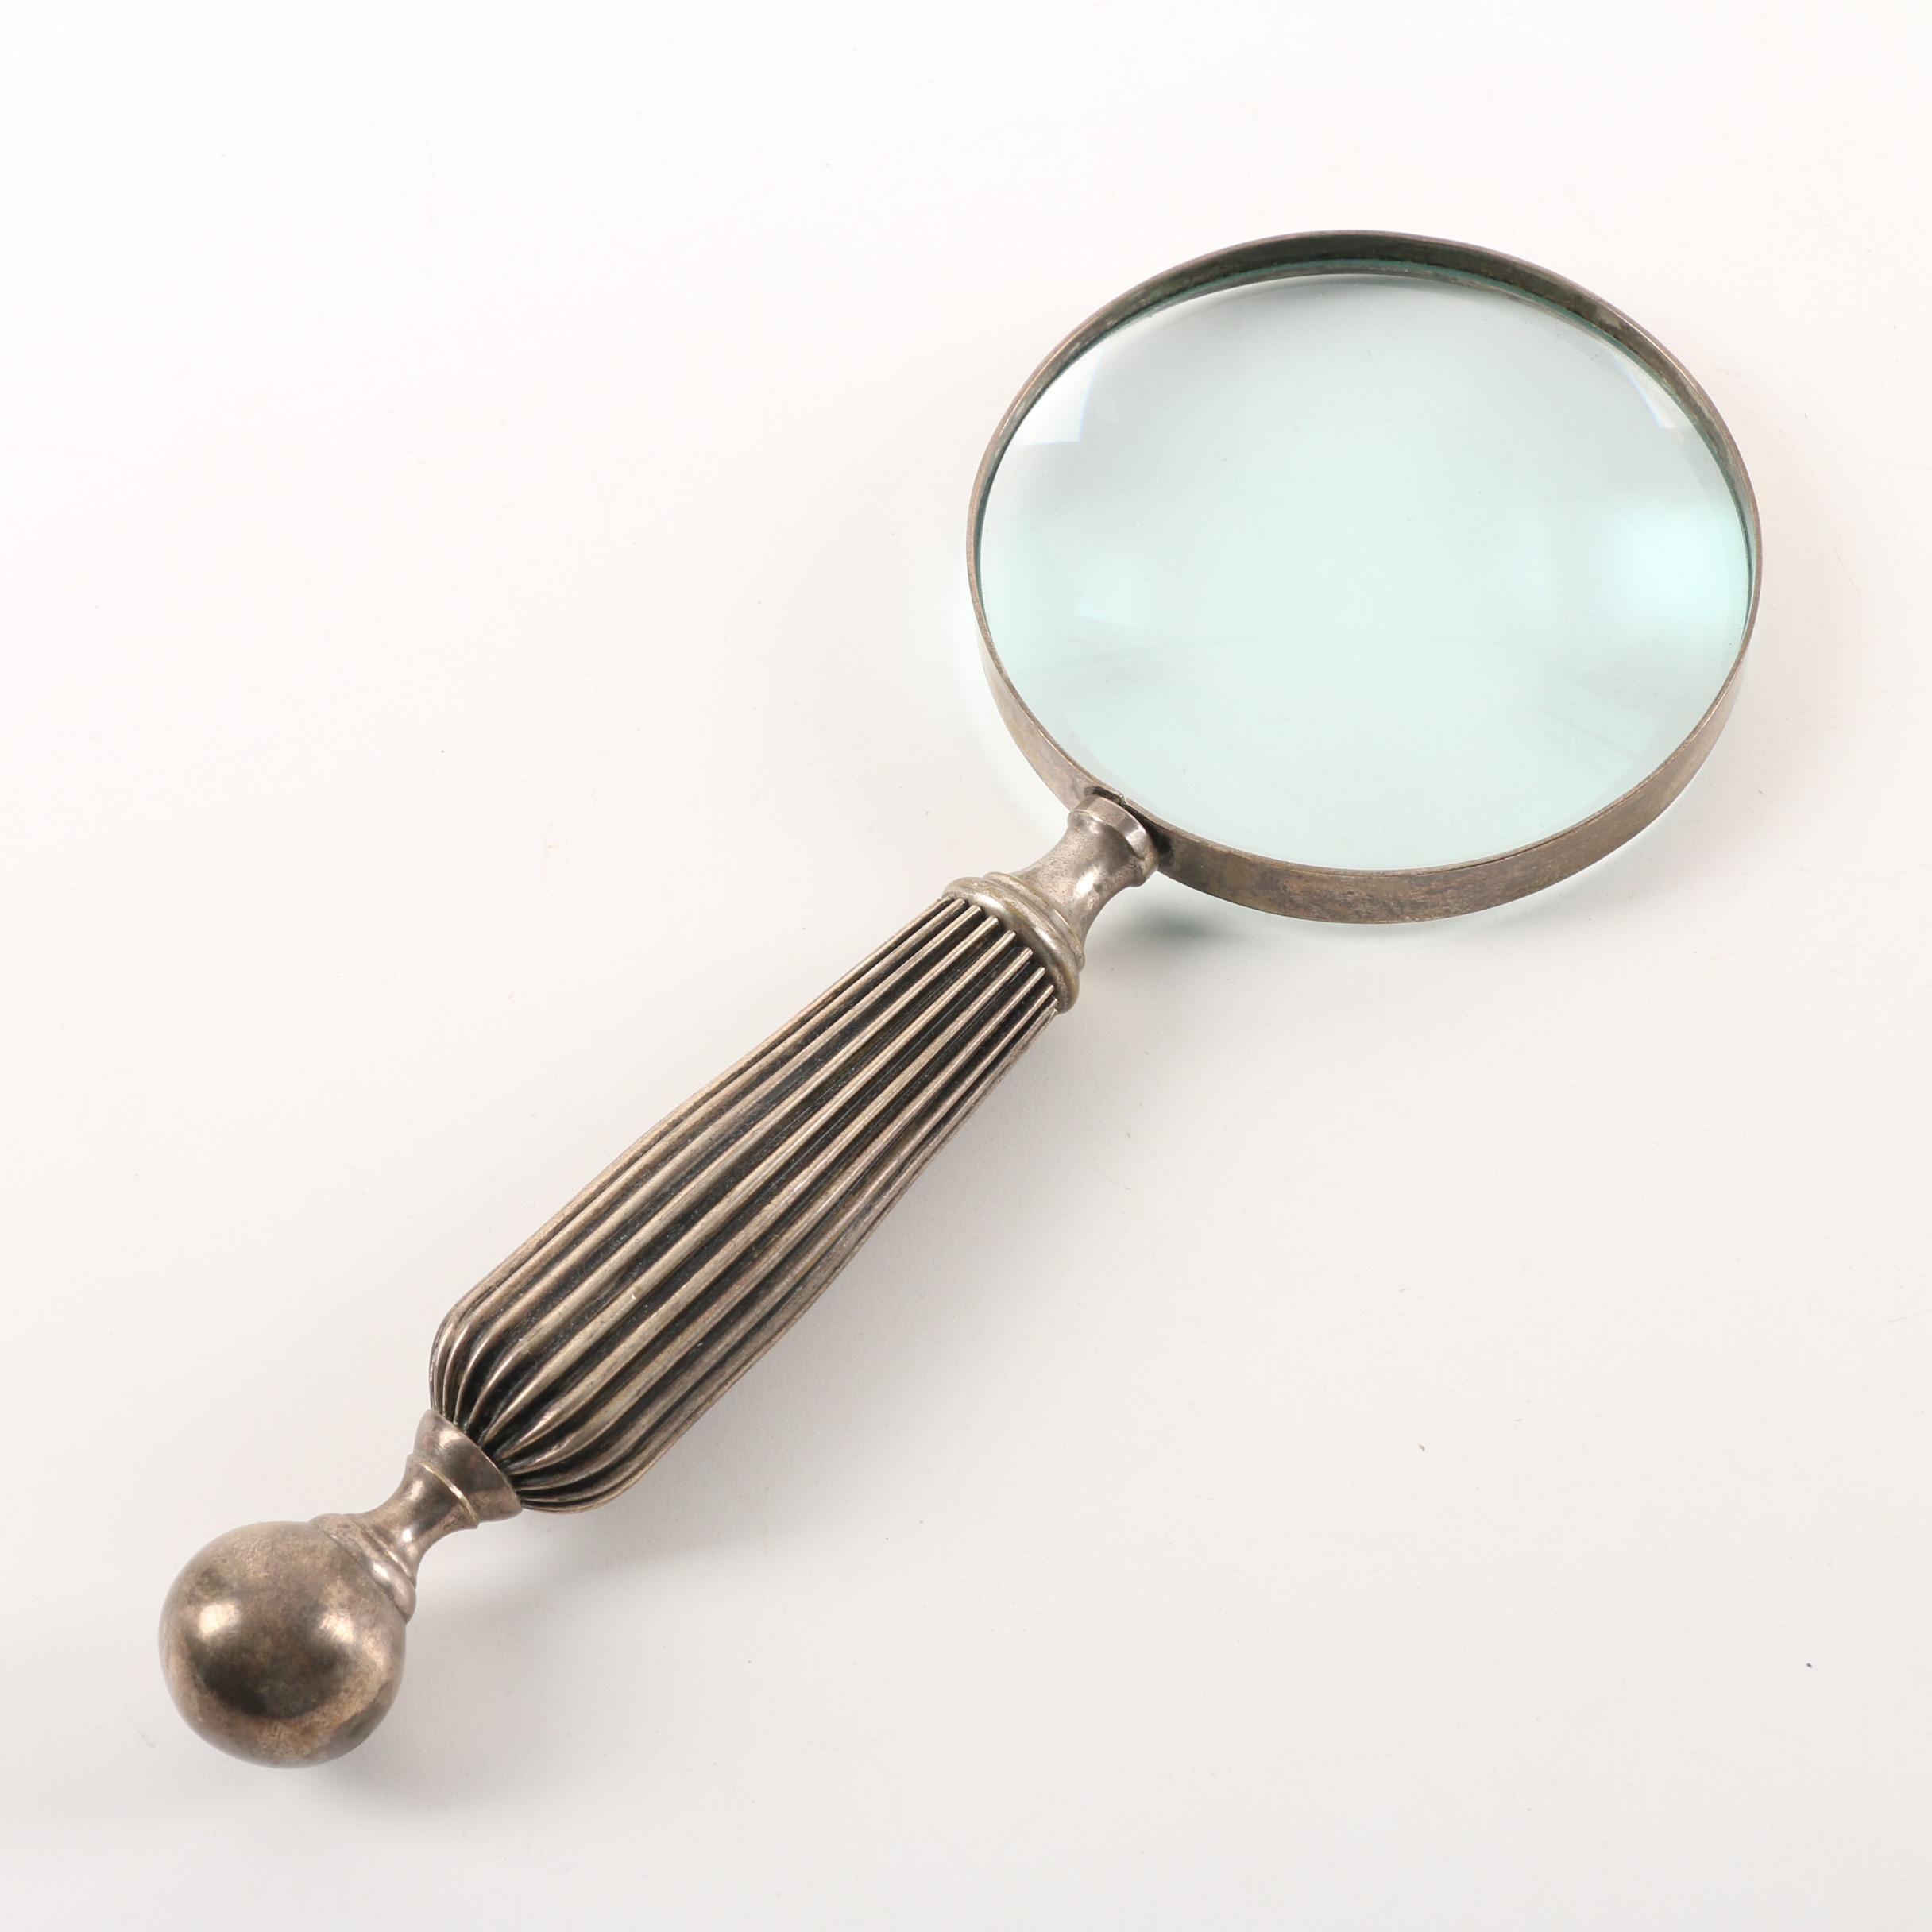 Vintage Silver Plated Magnifying Glass